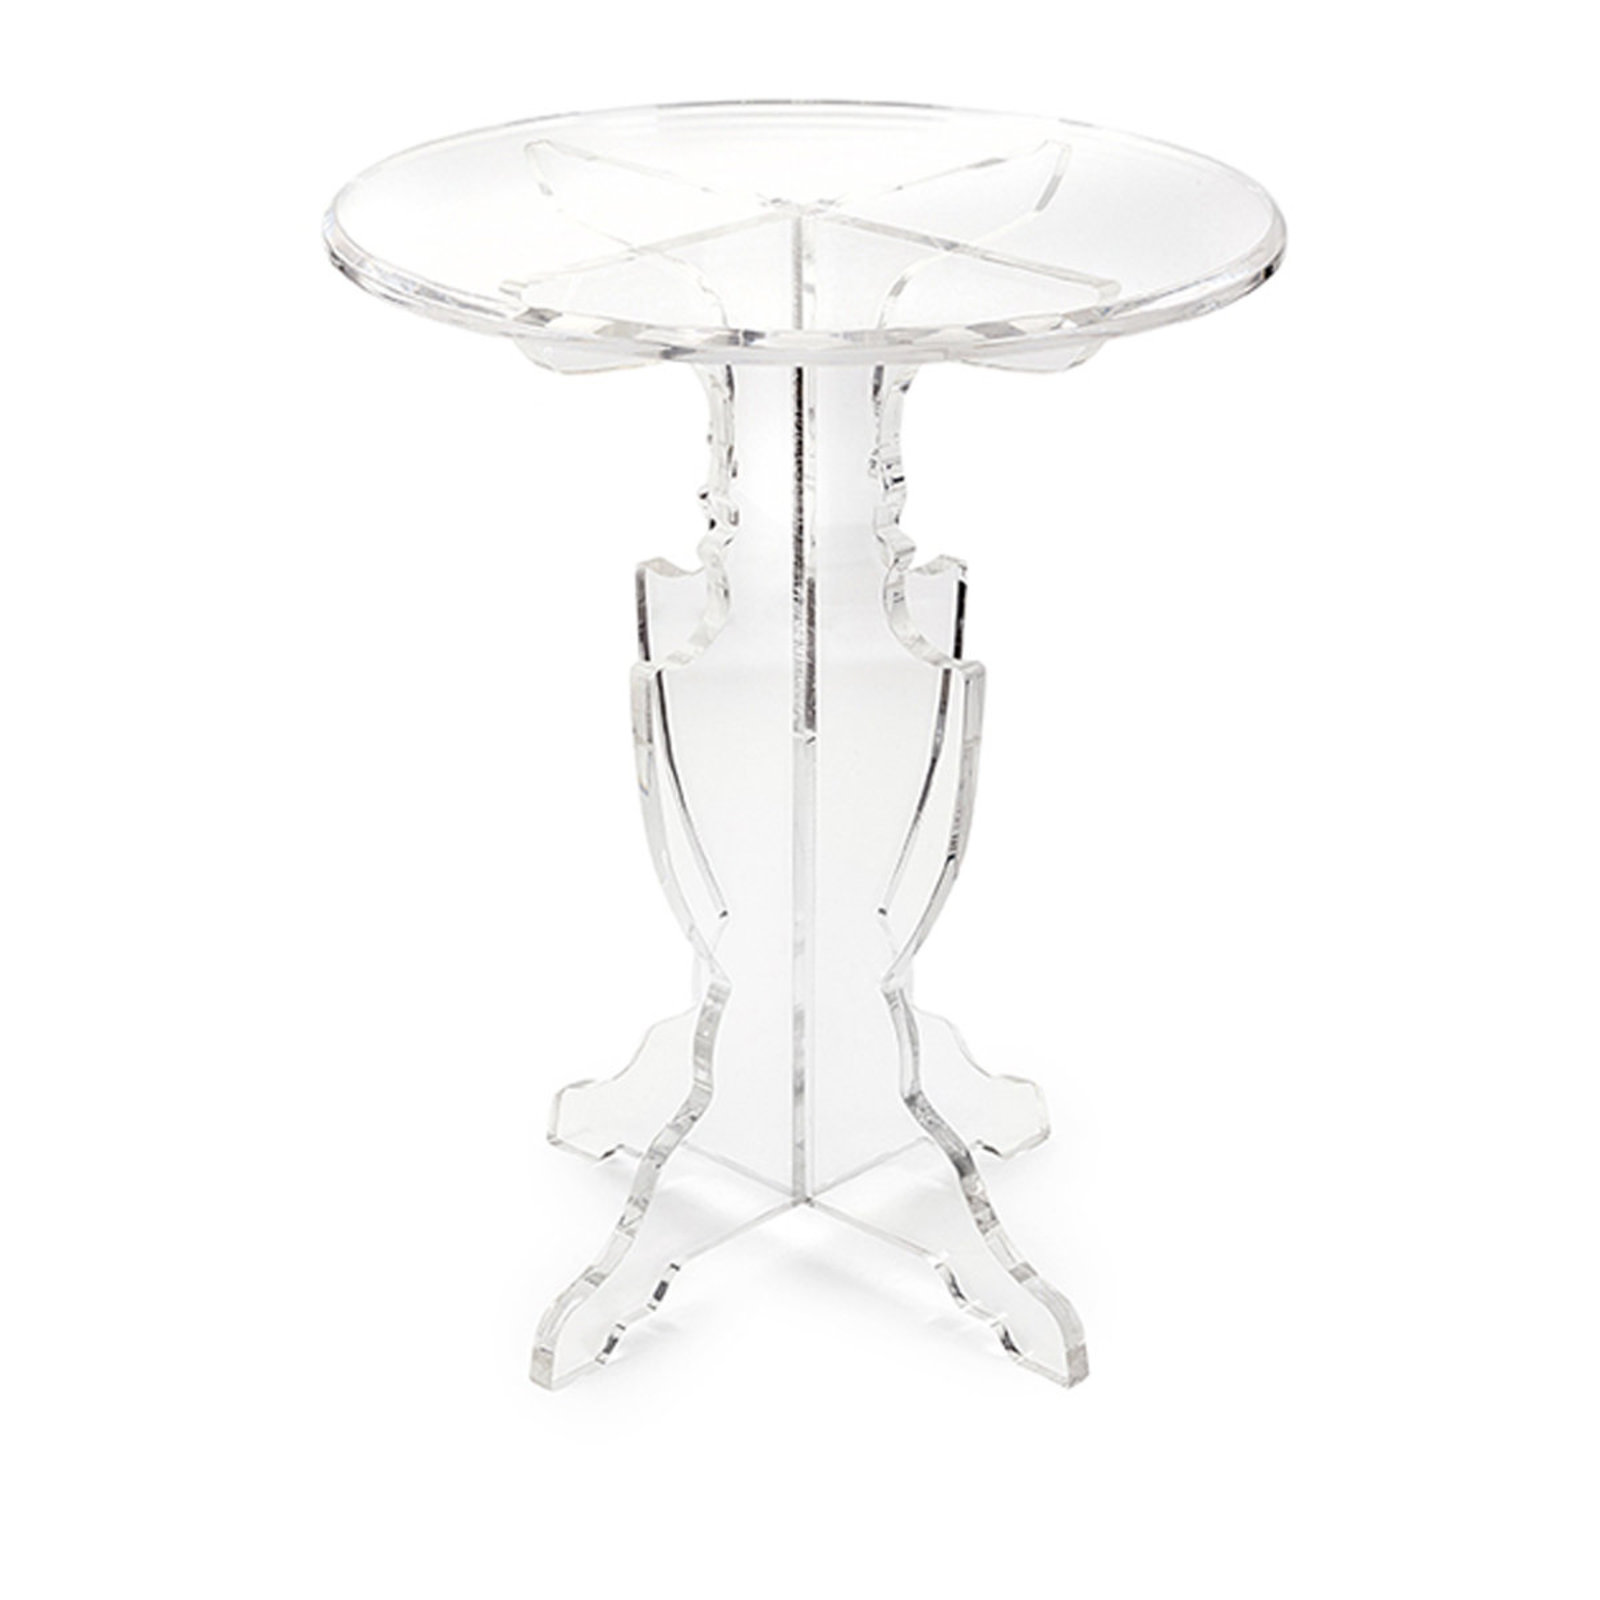 modern classic acrylic accent table shades light clear victorian lamps target kids rugs inch deep chest drawers outdoor beverage cooler grey bedroom chair illusion bistro